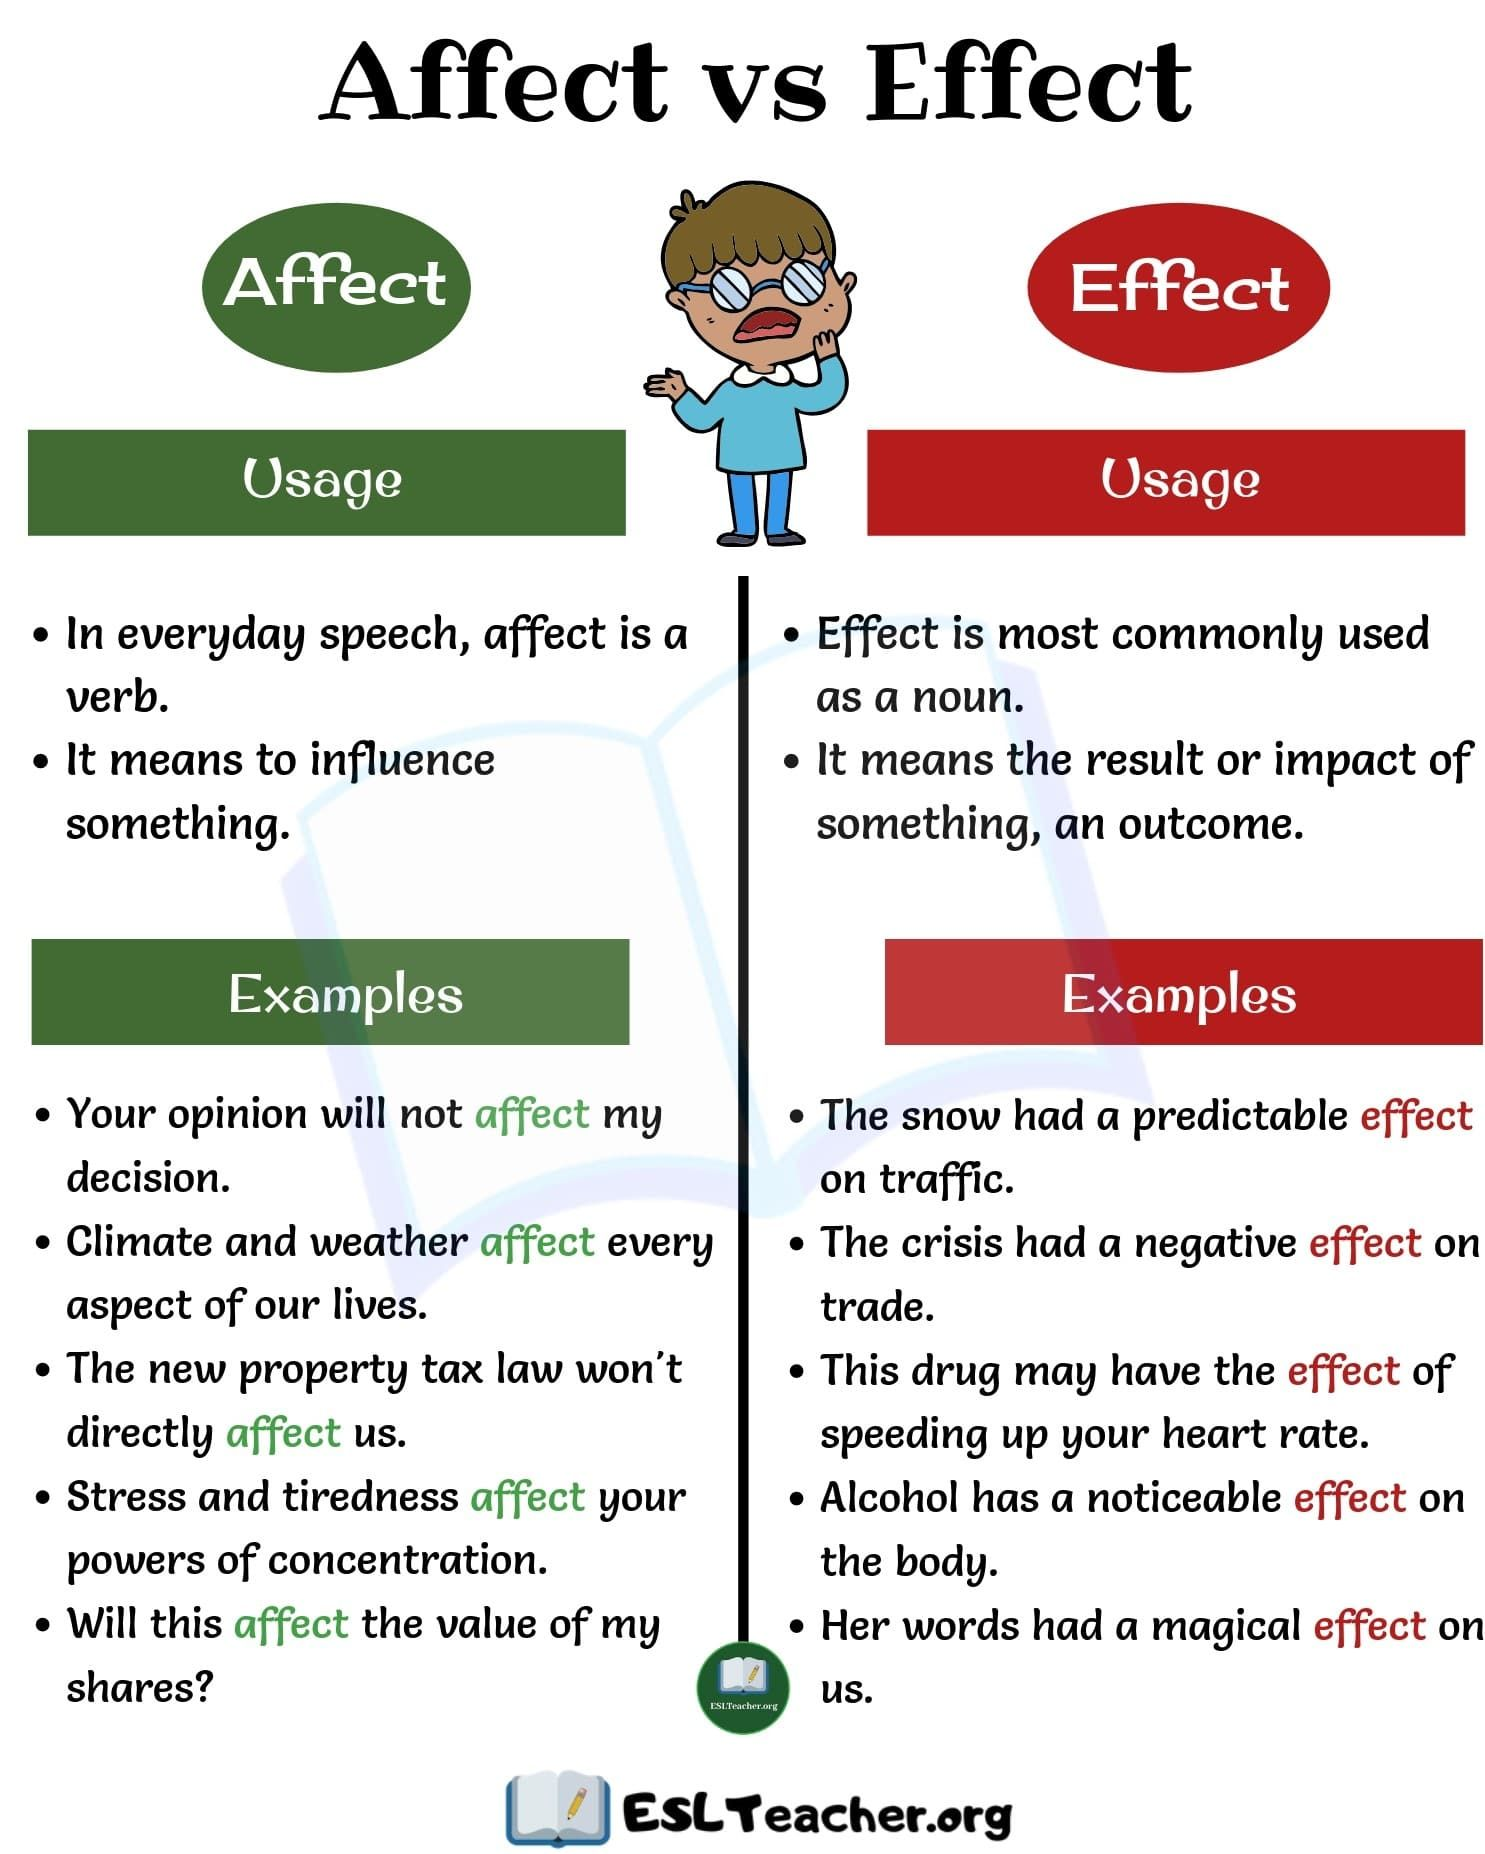 Affect vs Effect: How to Use Effect vs Affect Correctly - ESL Teacher    Word skills [ 1854 x 1485 Pixel ]